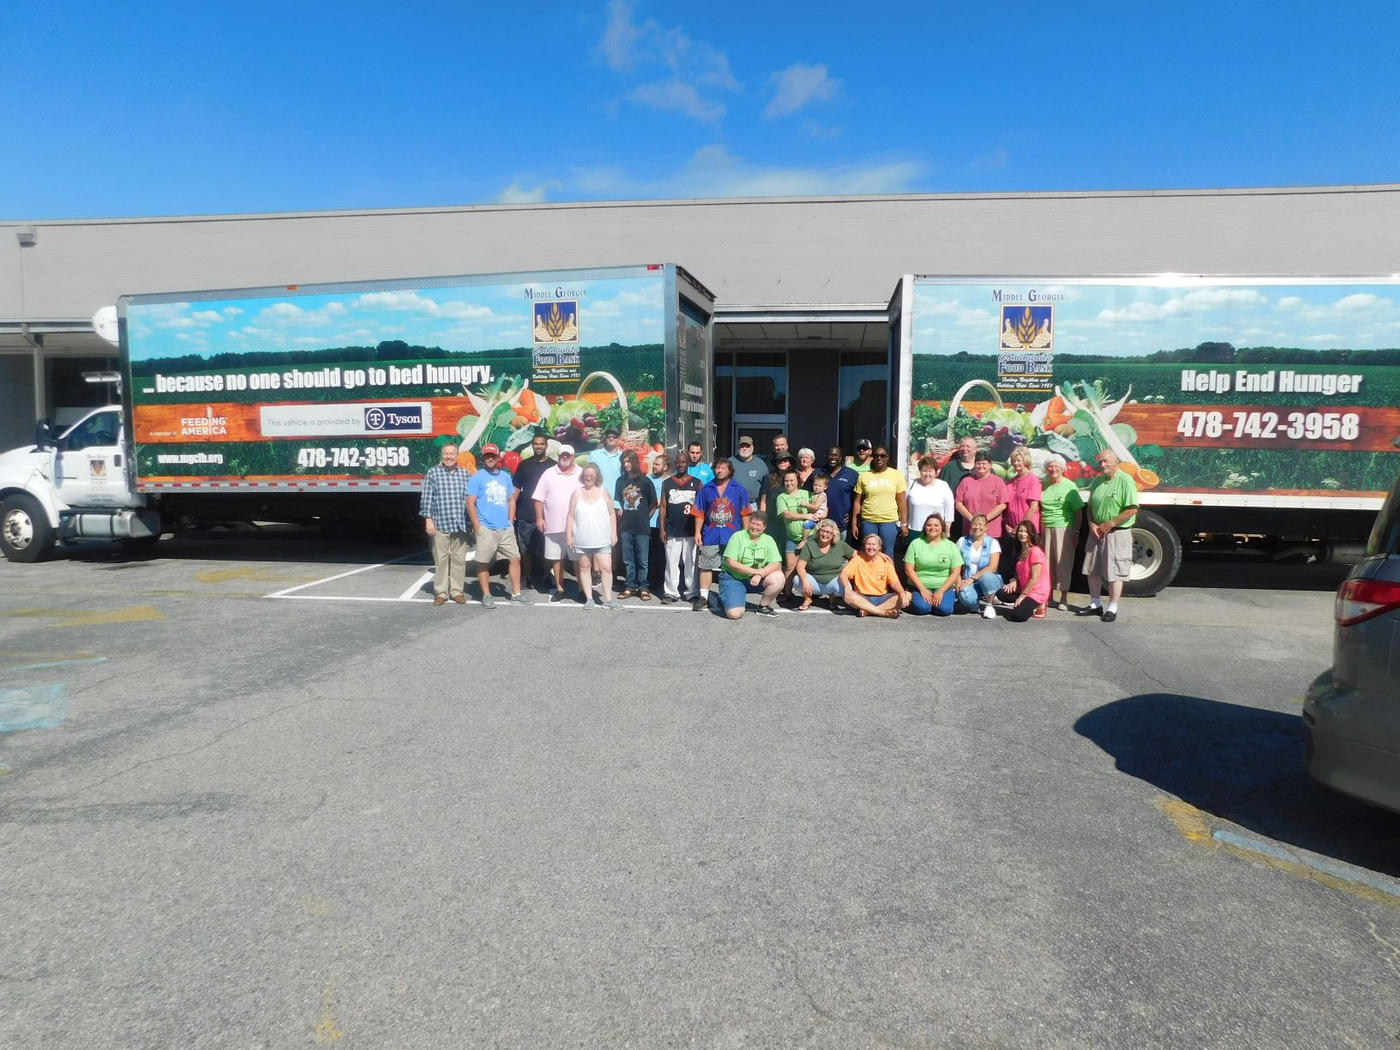 Bleckley County Mobile Pantry 1.JPG